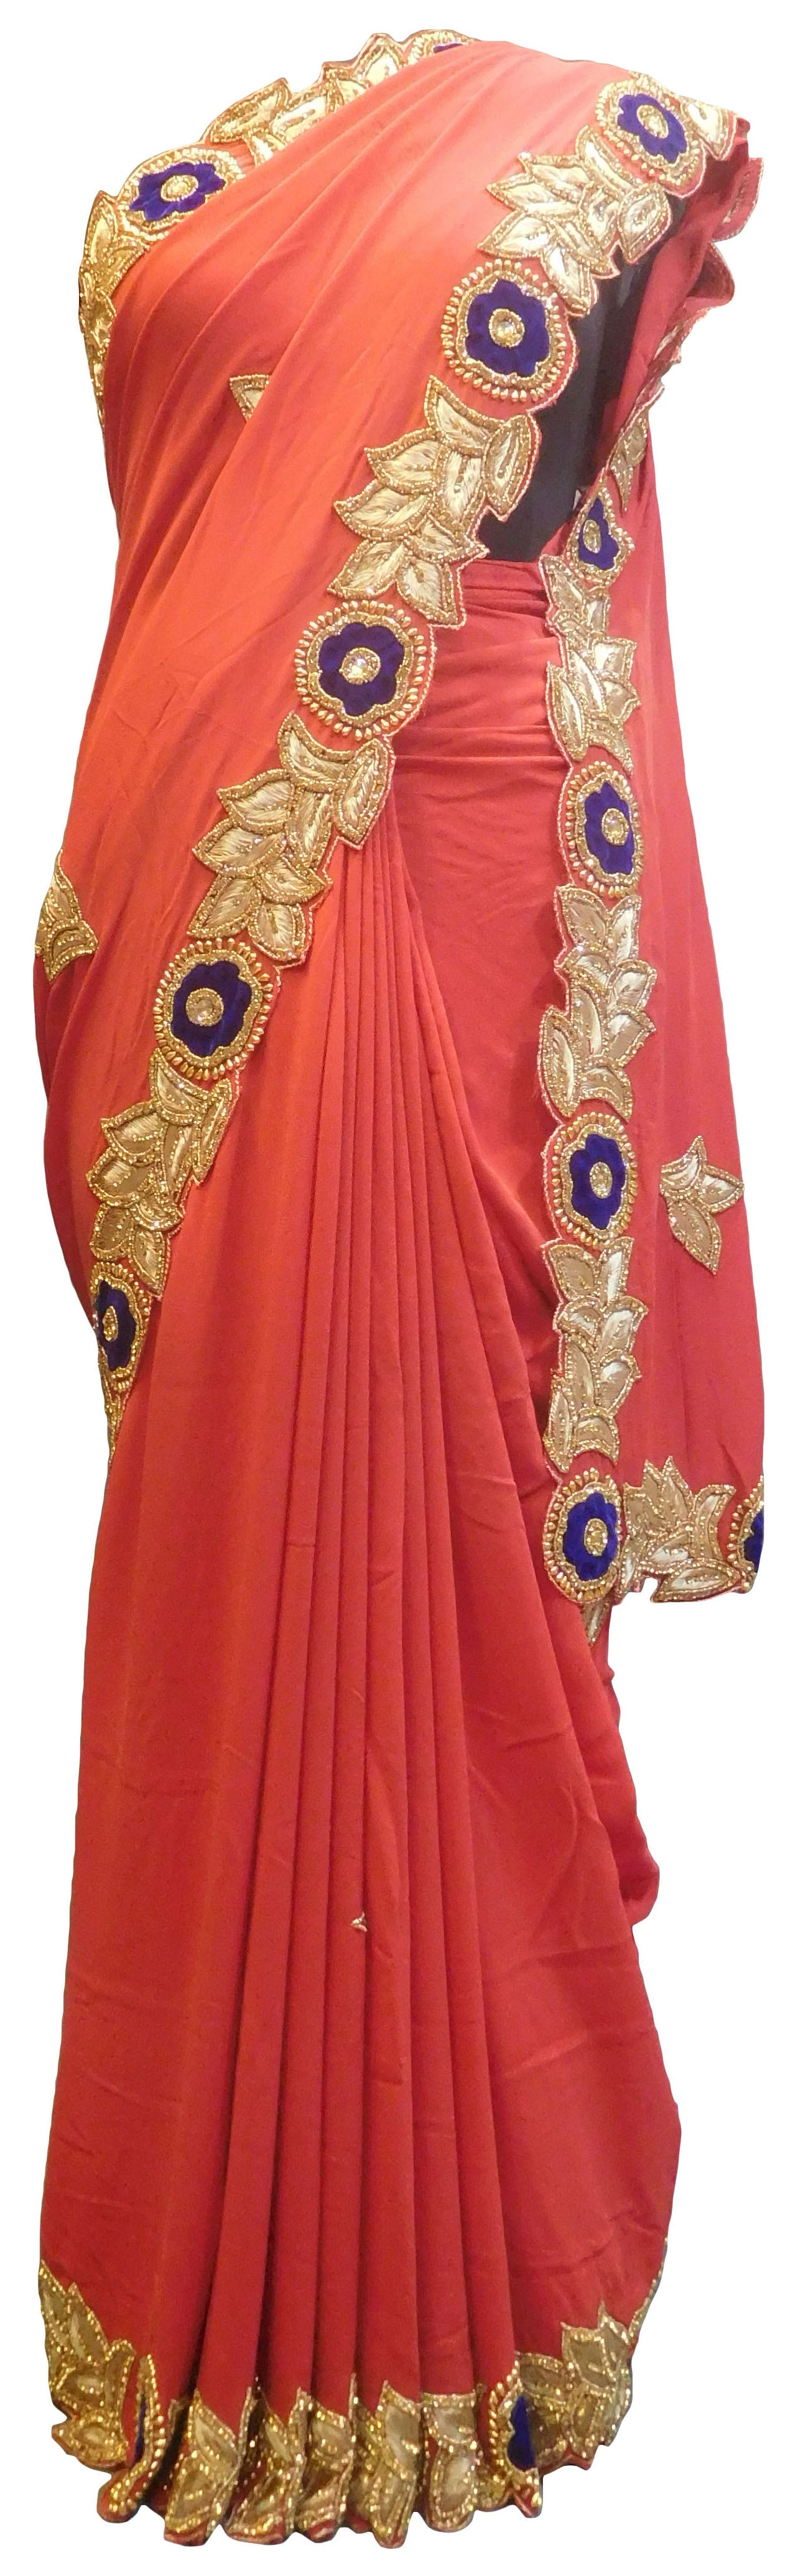 SMSAREE Red Designer Wedding Partywear Crepe (Chinon) Stone Thread & Beads Hand Embroidery Work Bridal Saree Sari With Blouse Piece E754